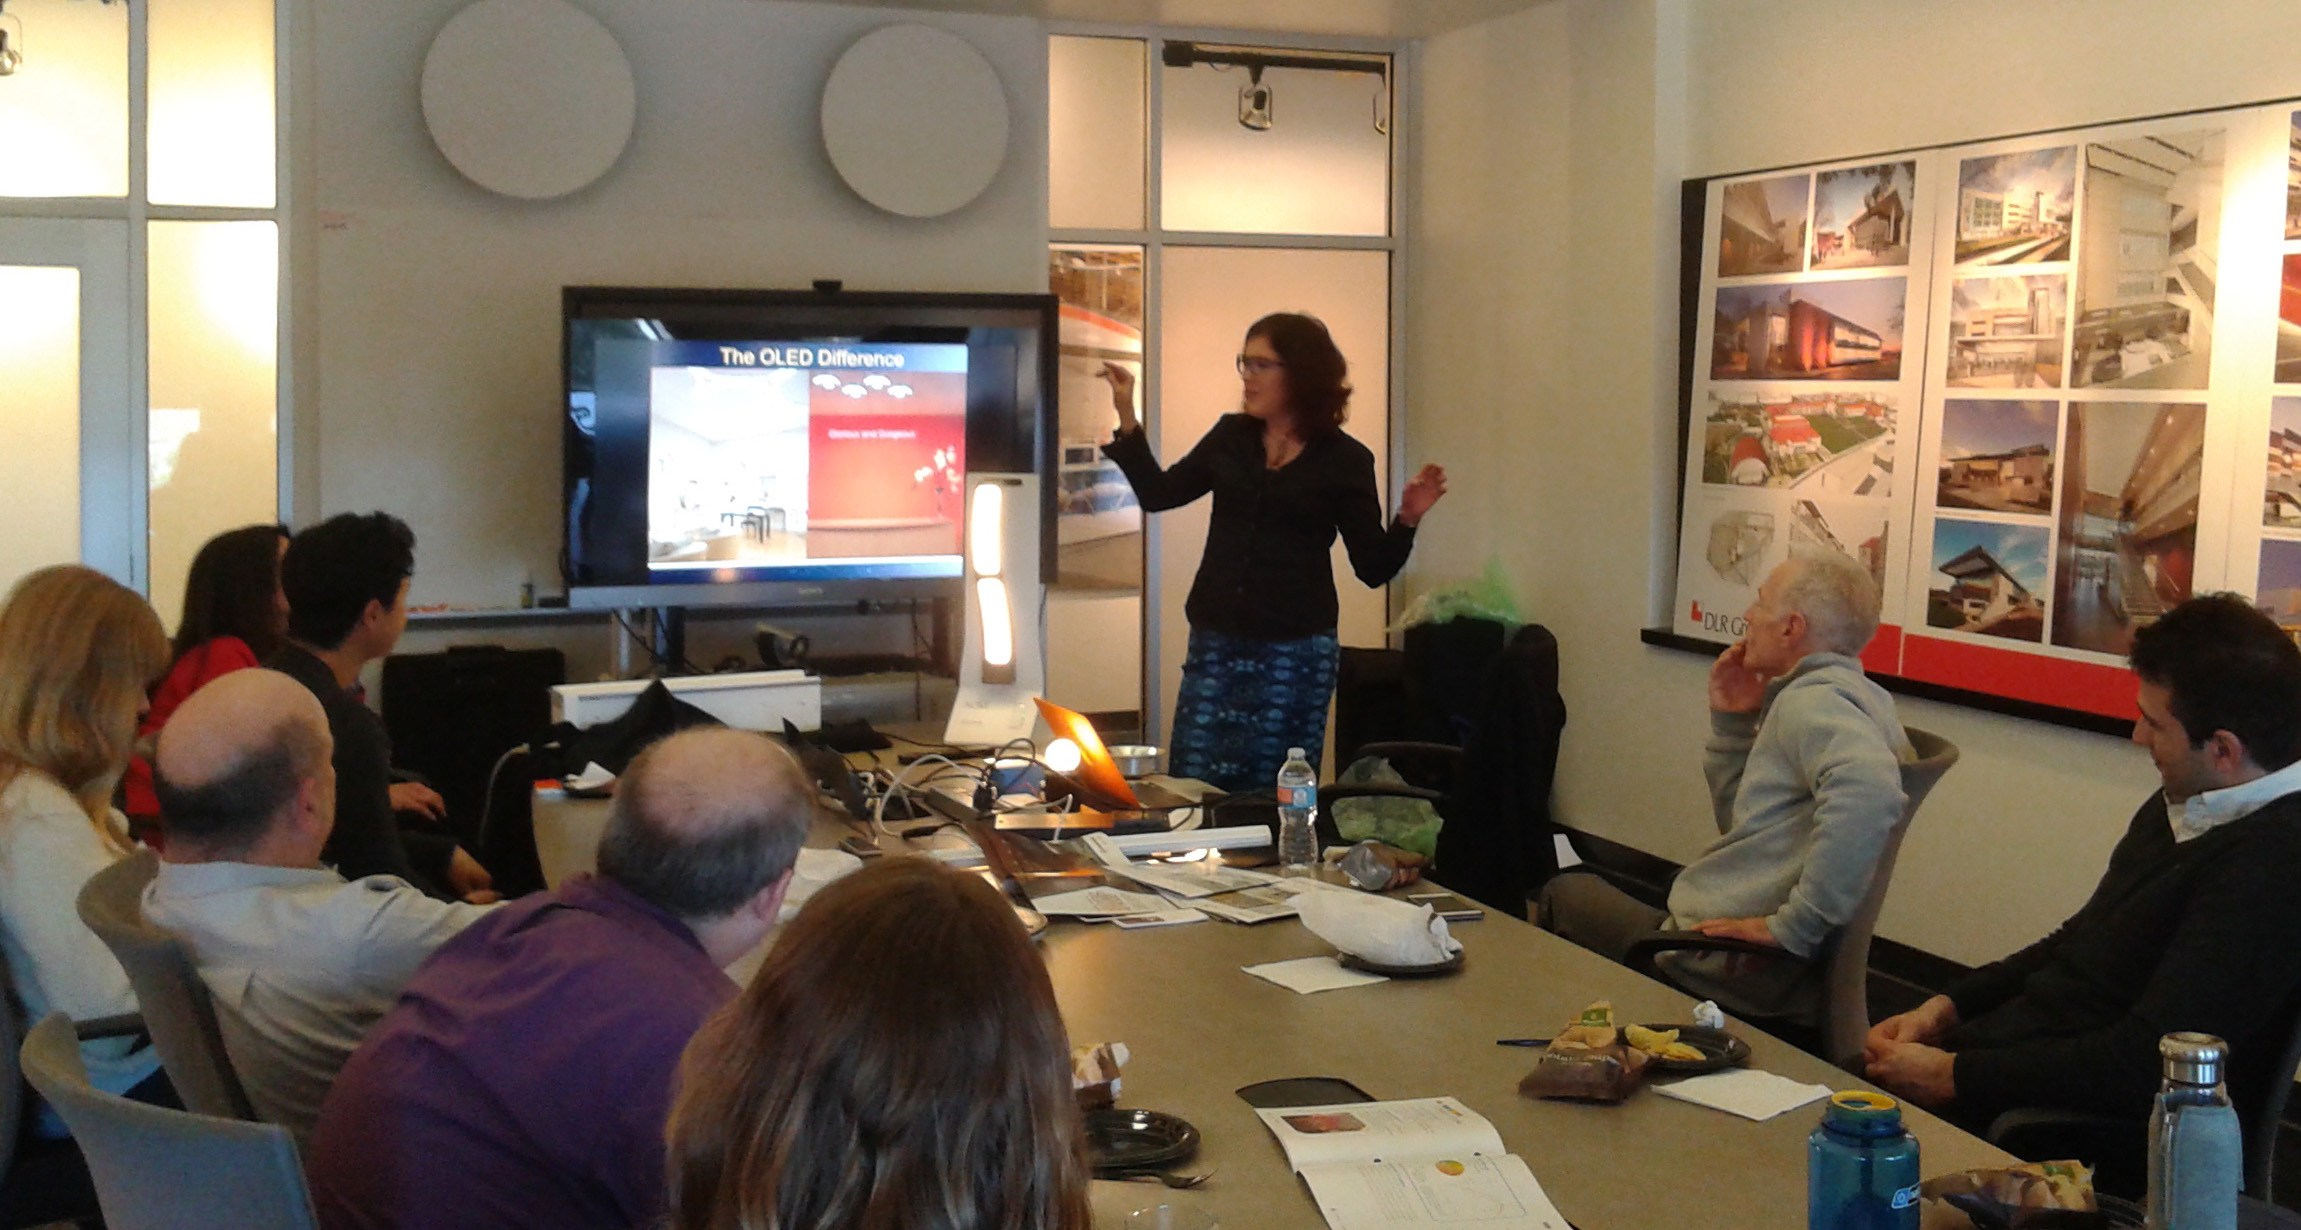 Therese Lahaie presenting at DLR Group, Los Angeles CA